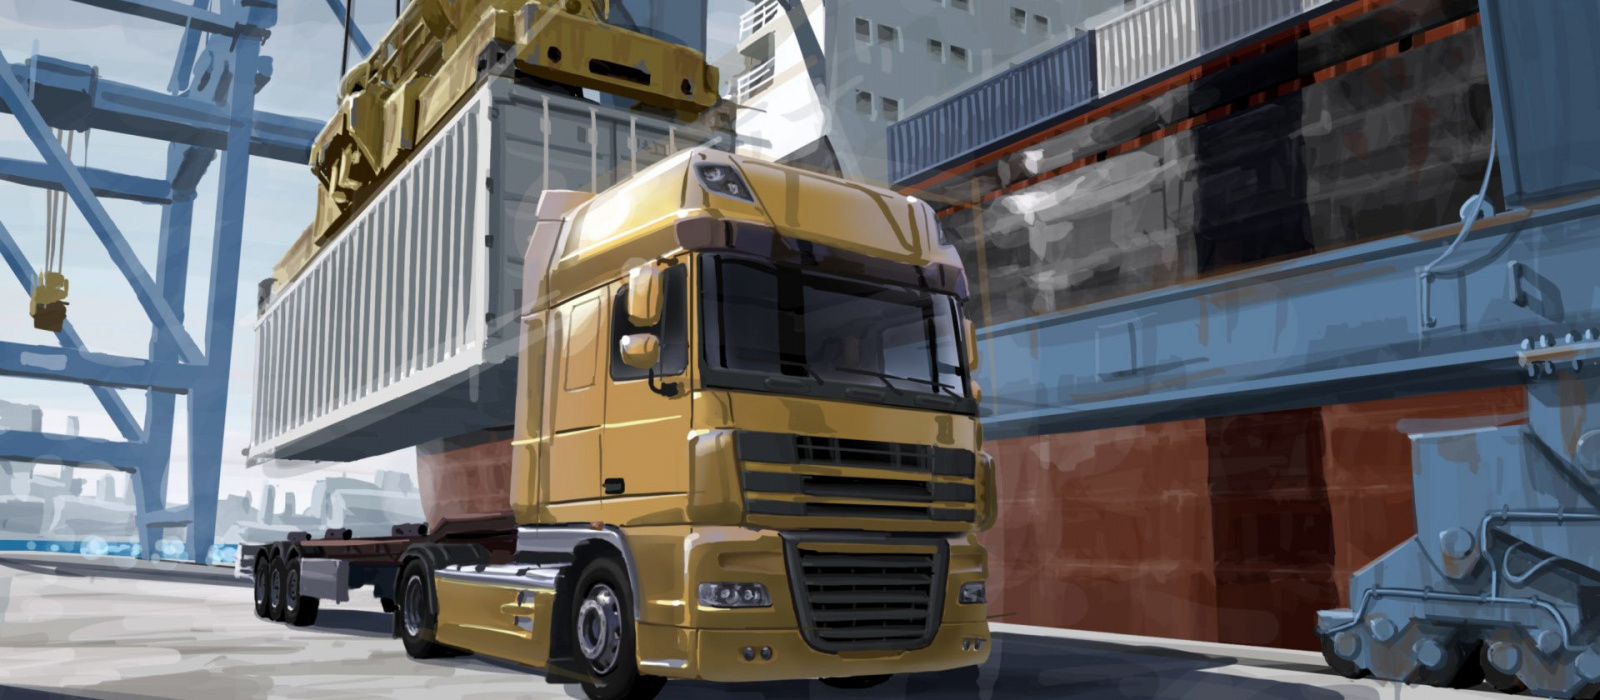 Money in Euro Truck Simulator 2 - how to make a lot with cheats, mods and honest ways